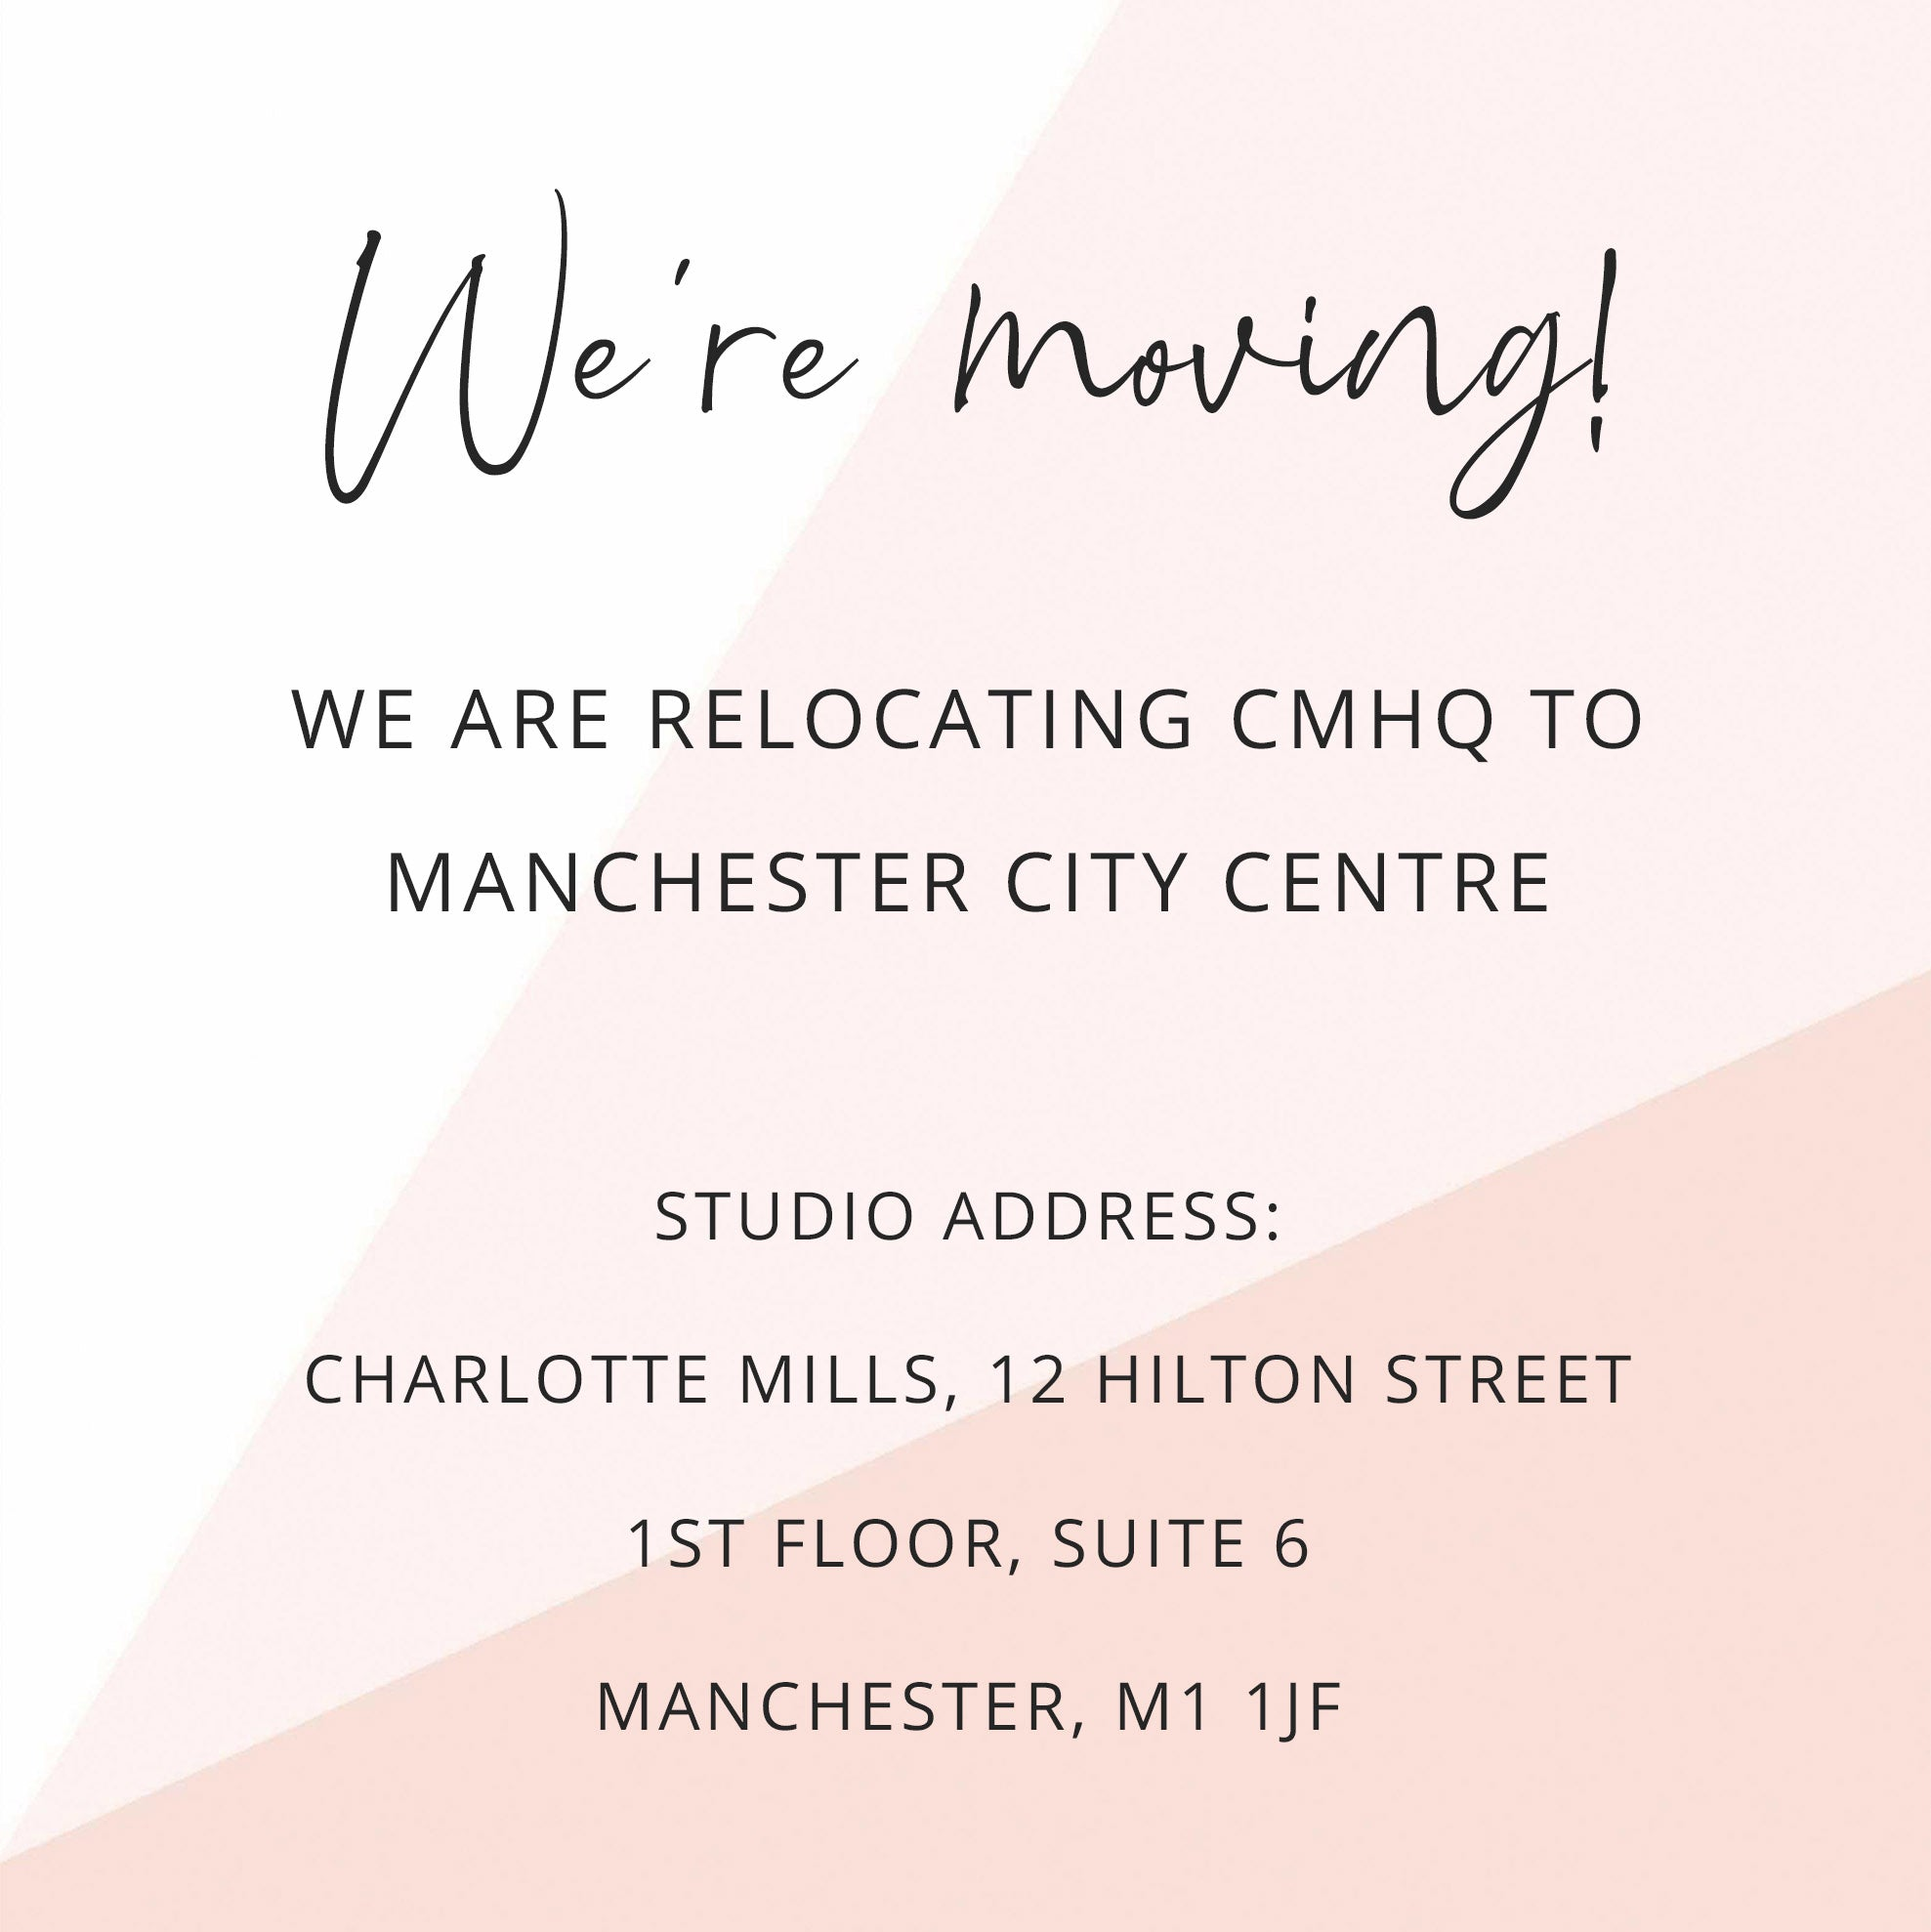 charlotte mills manchester showroom - new address